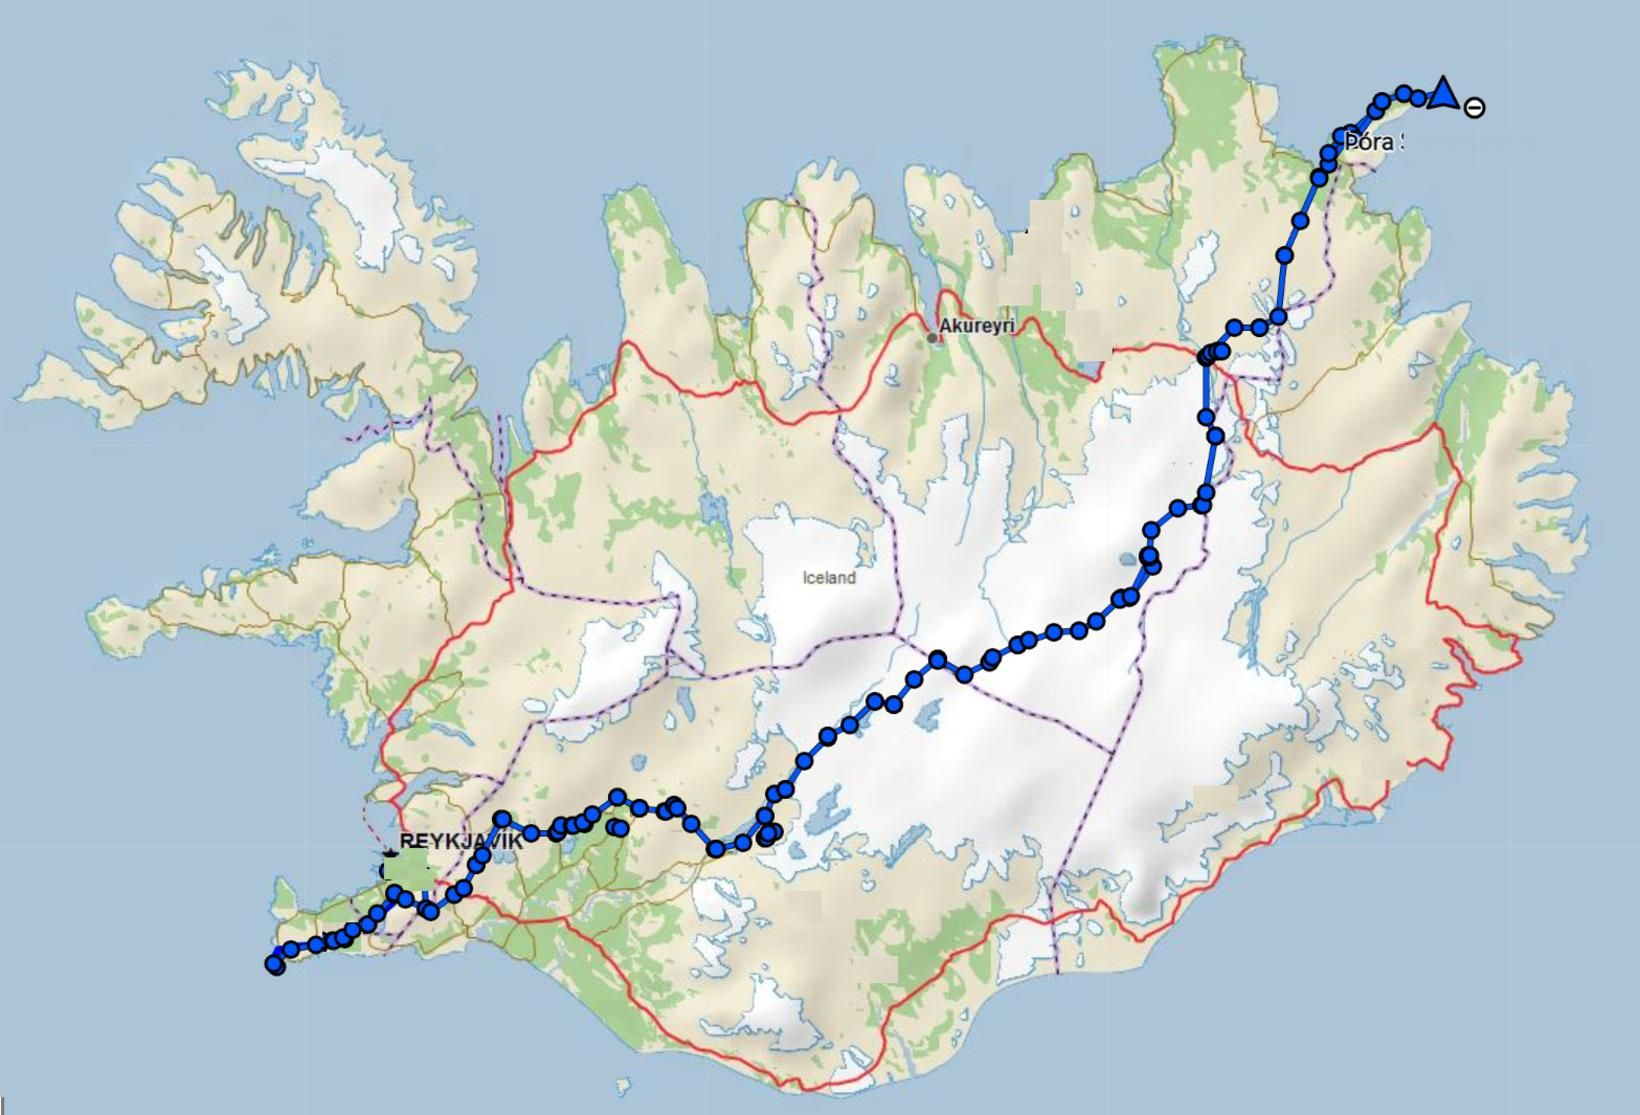 Mother and Daughter Hike Across Iceland - Iceland Monitor in 9